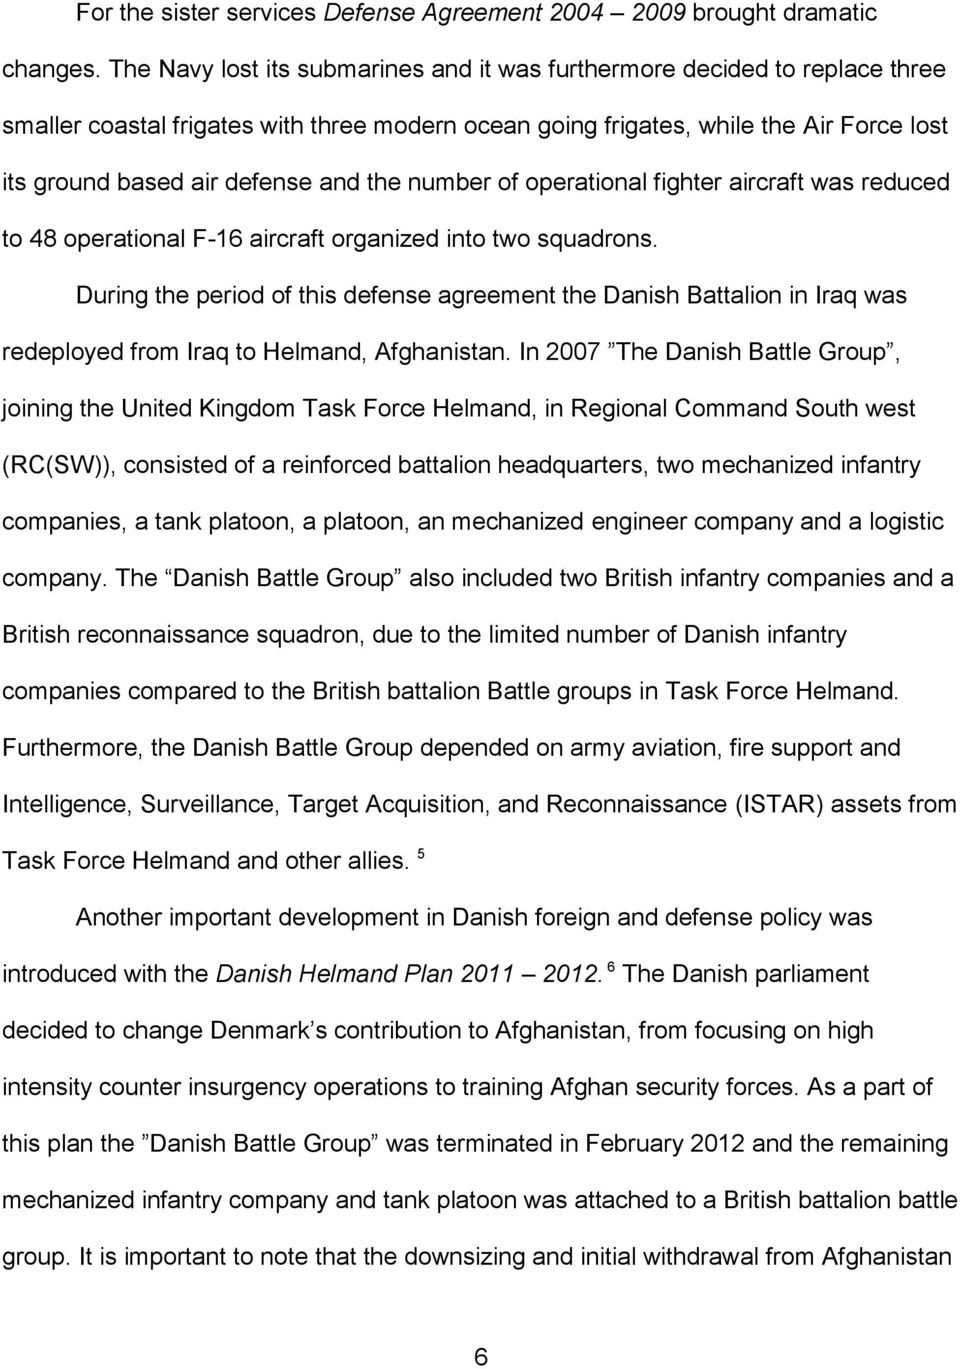 the number of operational fighter aircraft was reduced to 48 operational F-16 aircraft organized into two squadrons.